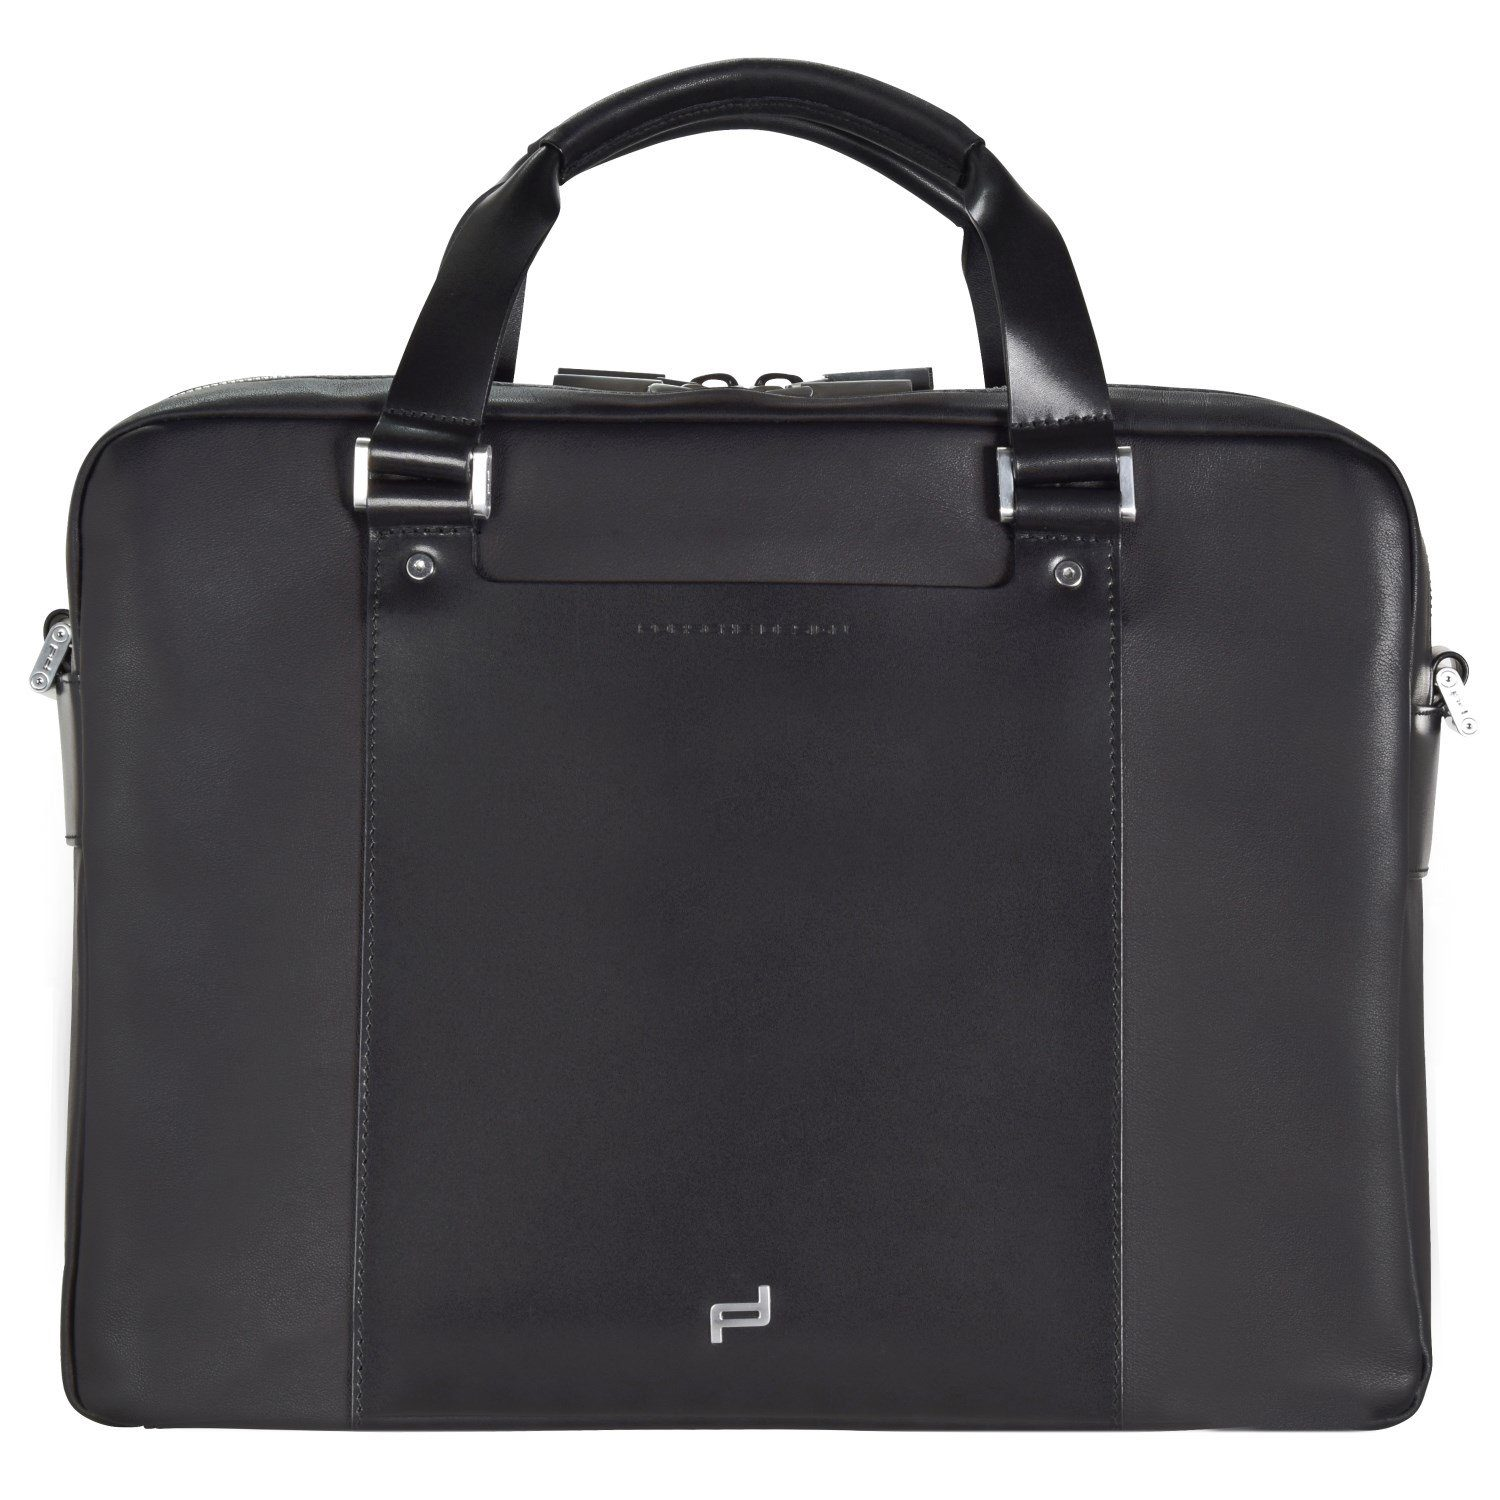 Porsche Design Shyrt-Leather BriefBag MZ2 Aktentasche Leder 39 cm Laptopfach